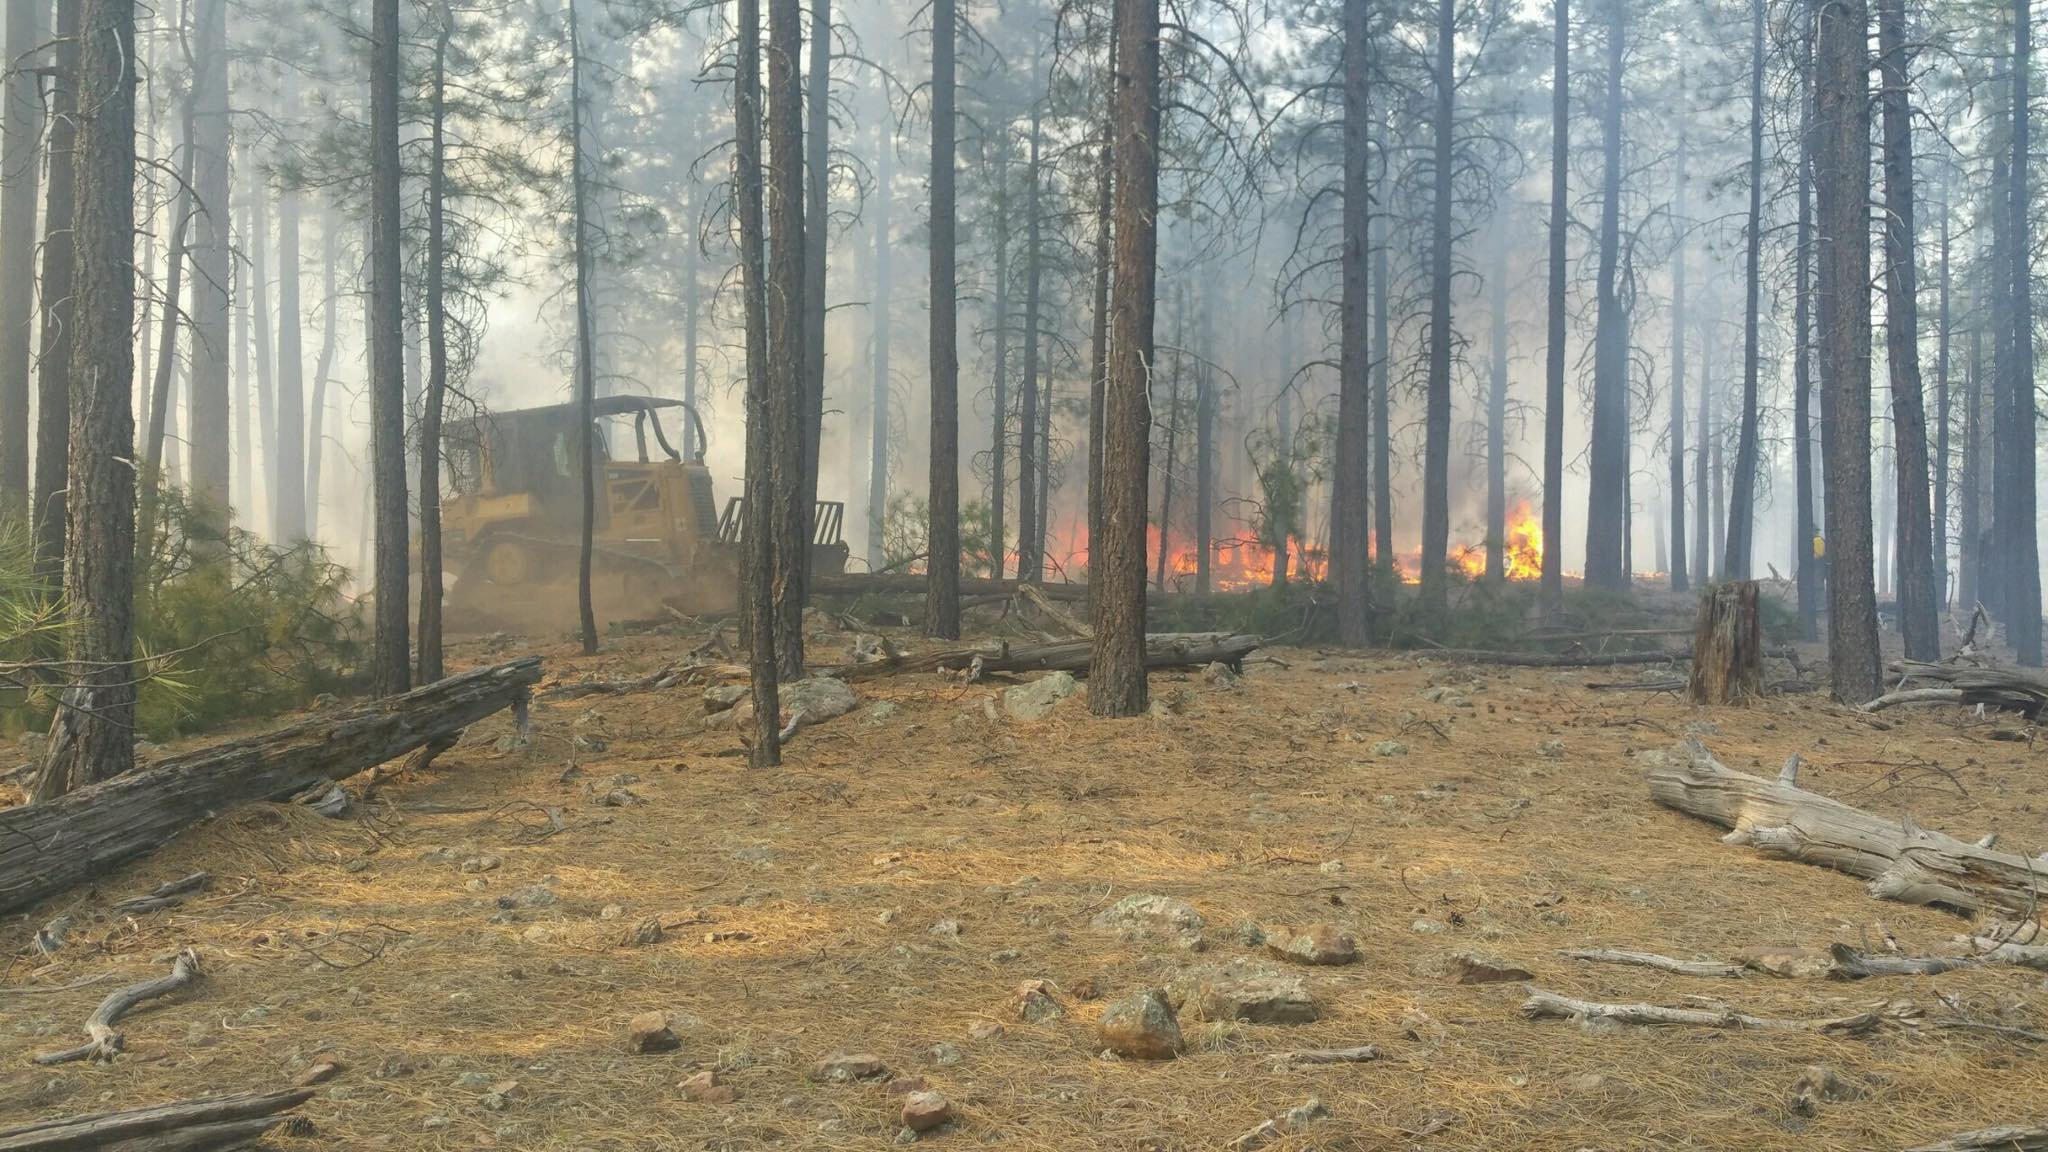 An investigation is underway into what started the wildfire. (Source: Forest Lakes Fire Department)